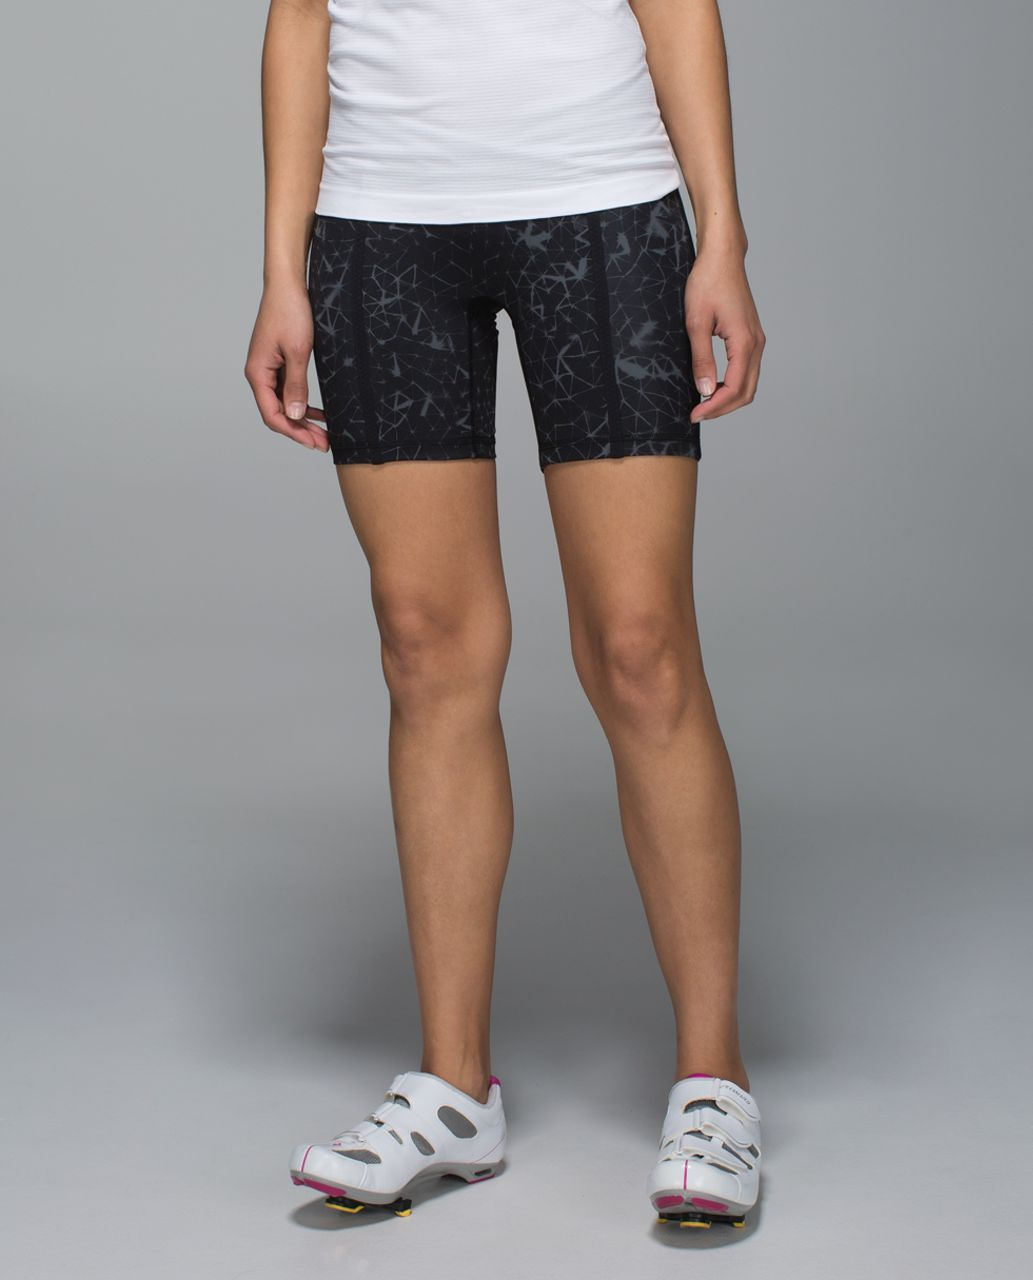 Lululemon Pedal Pace Short - Star Crushed Coal Black / Black